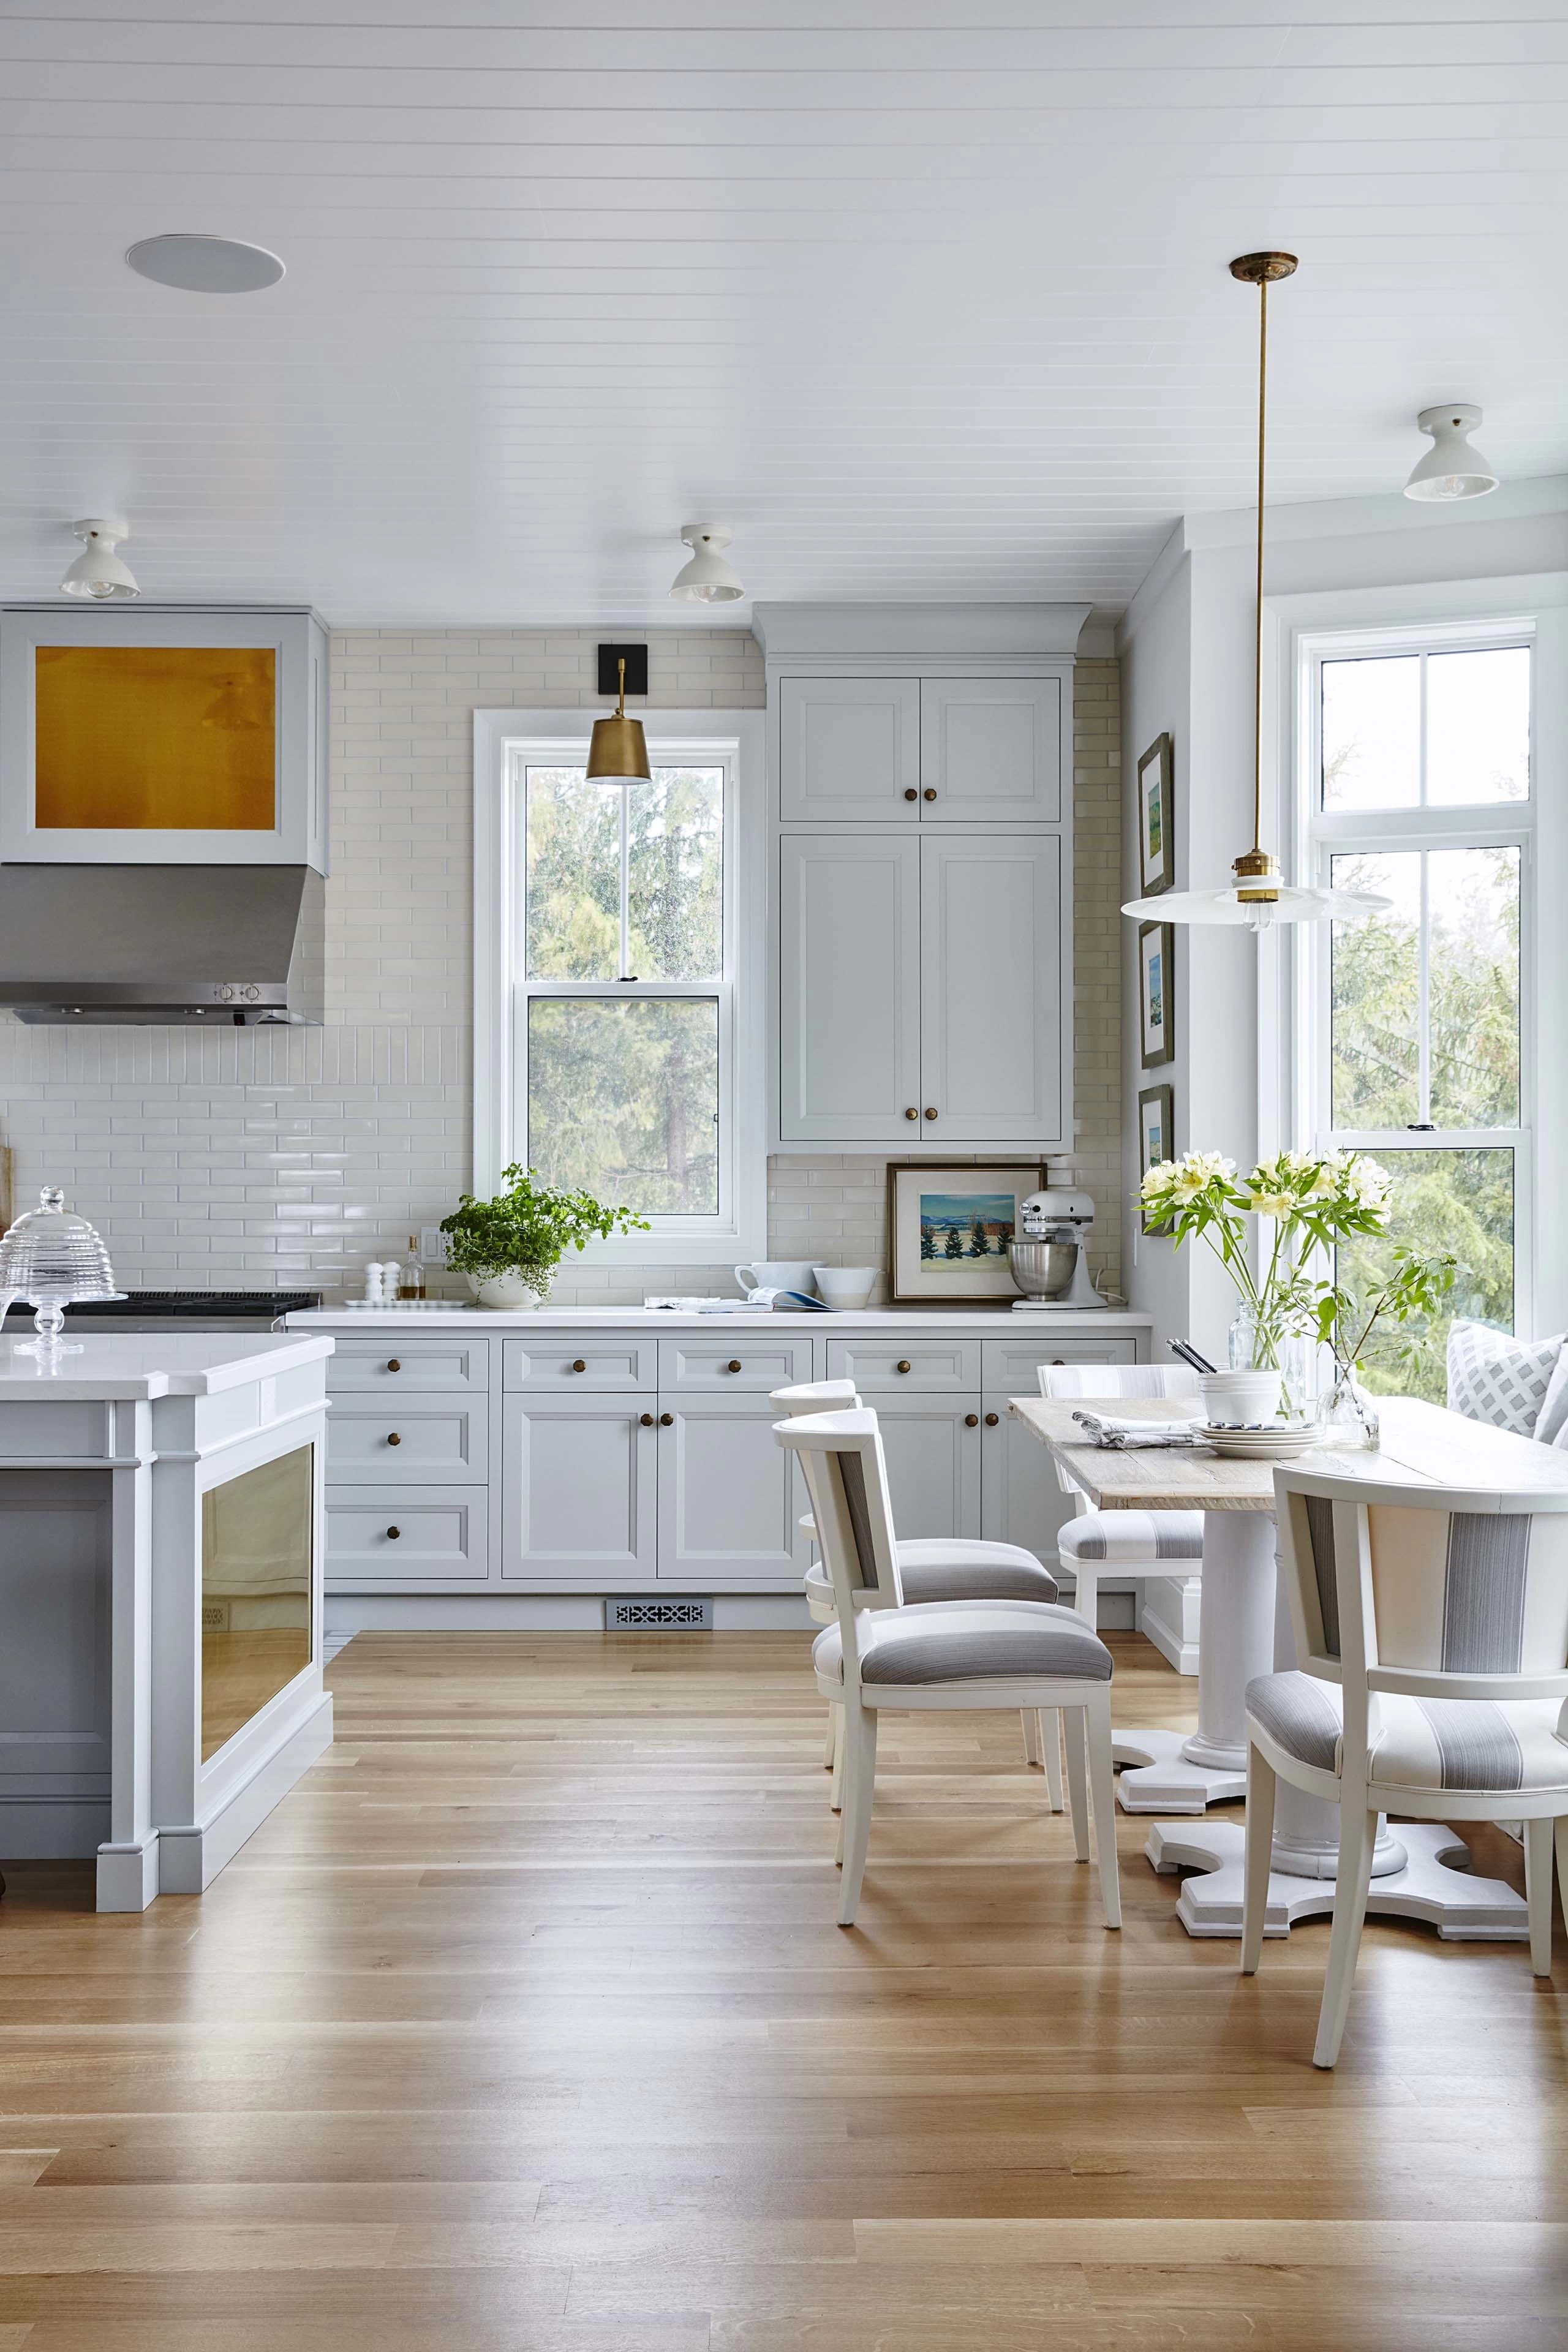 50 Decorating Ideas Inspired By Sarah Richardson Part 1 Hello Lovely